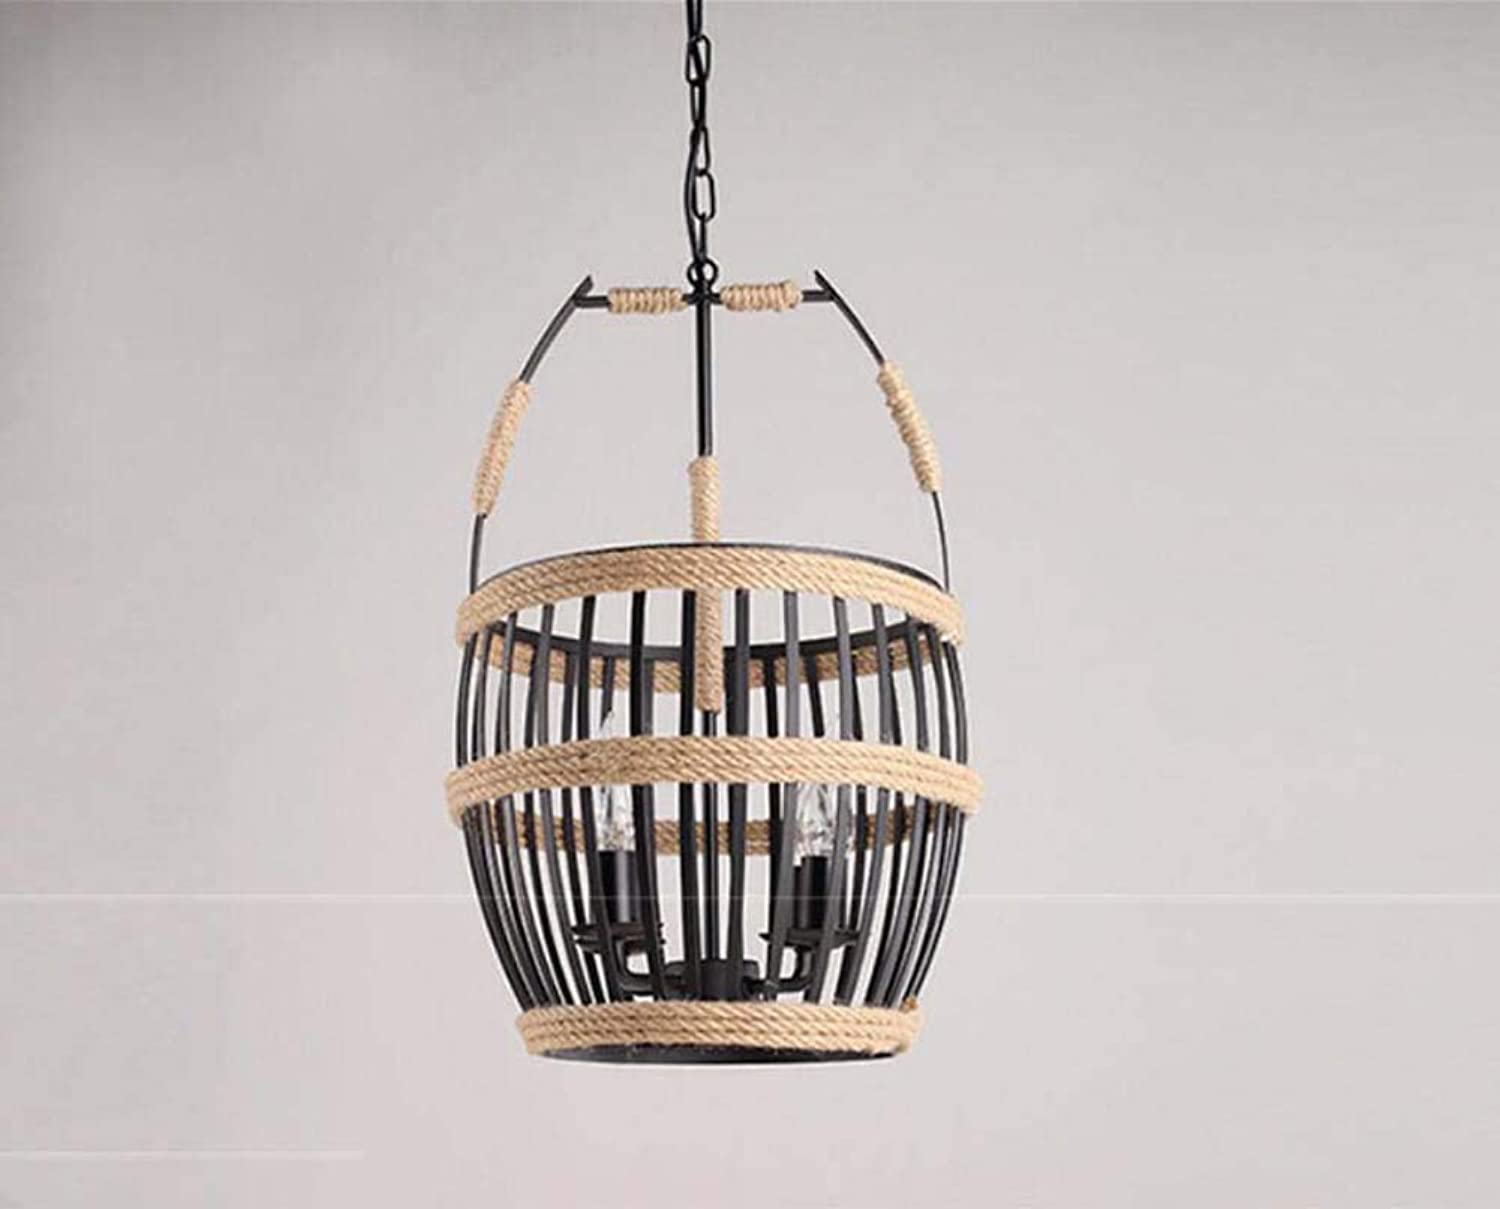 Mamrar Retro-Hanf-Seil Pendant Lampe Hohl Weinfass Korb Form Chandelier Bar Cafe Restaurant Deco Hngende Linie Light,L